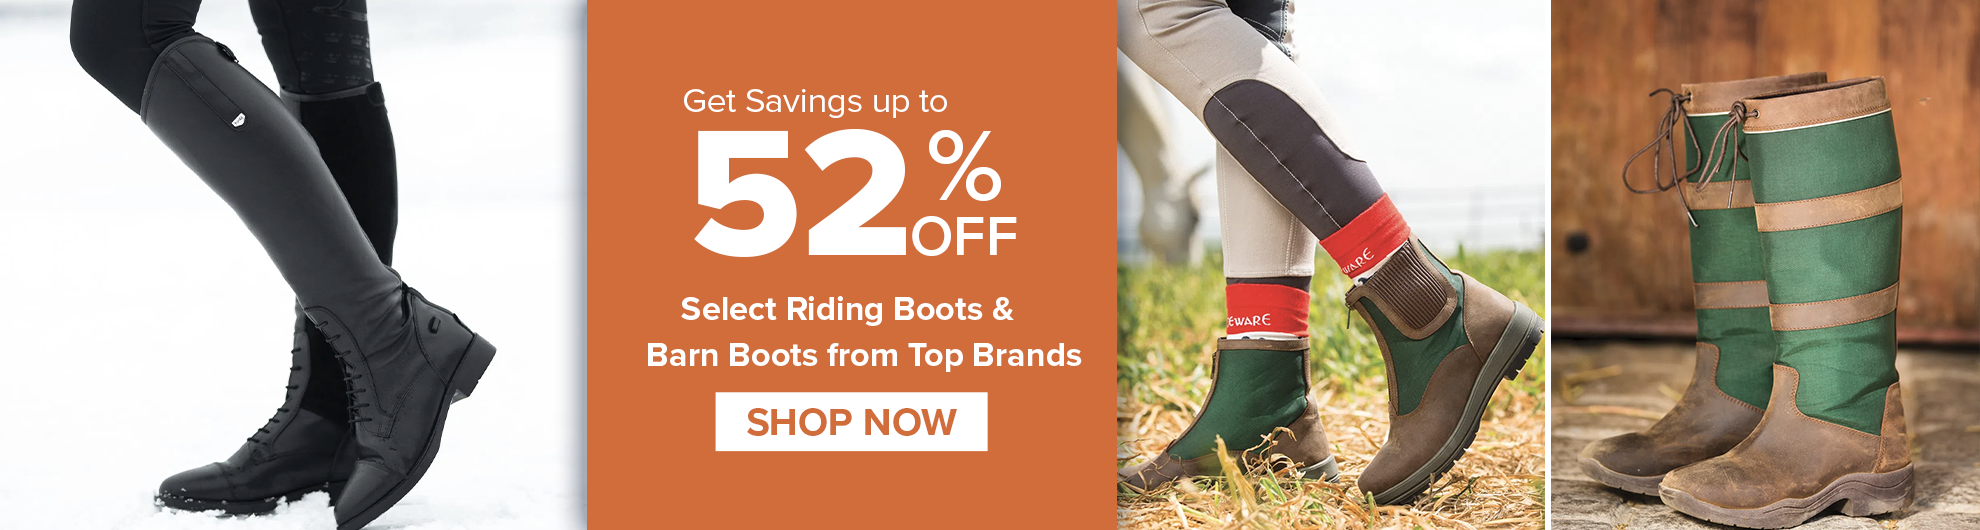 Riding Boots on Sale